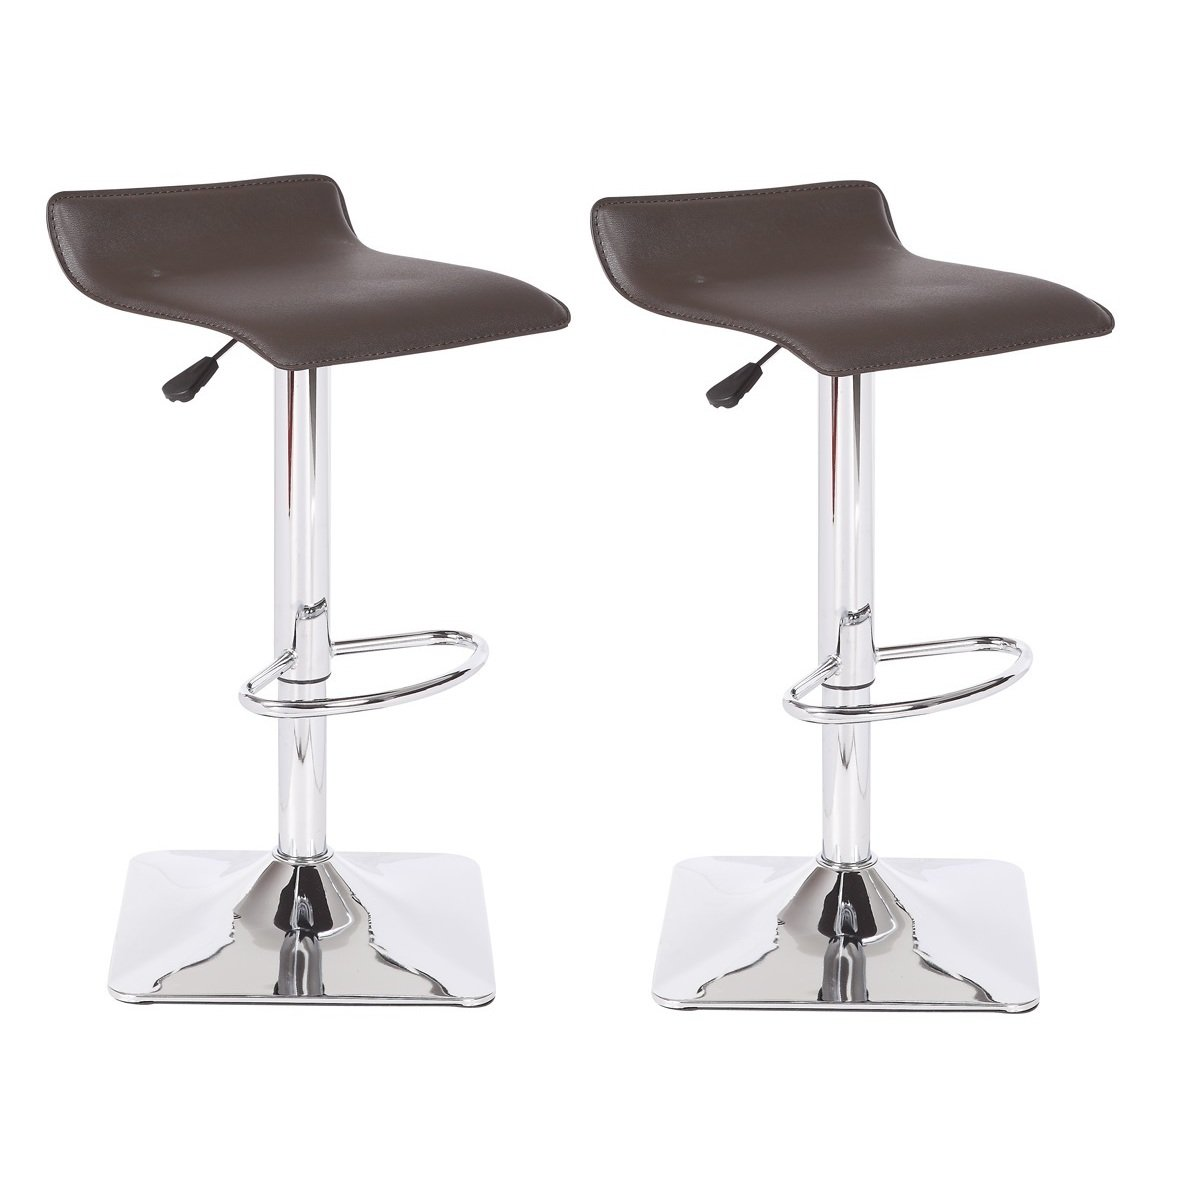 US Pride Furniture Dylan Adjustable Swivel Bar Stool Set of 2, Chocolate